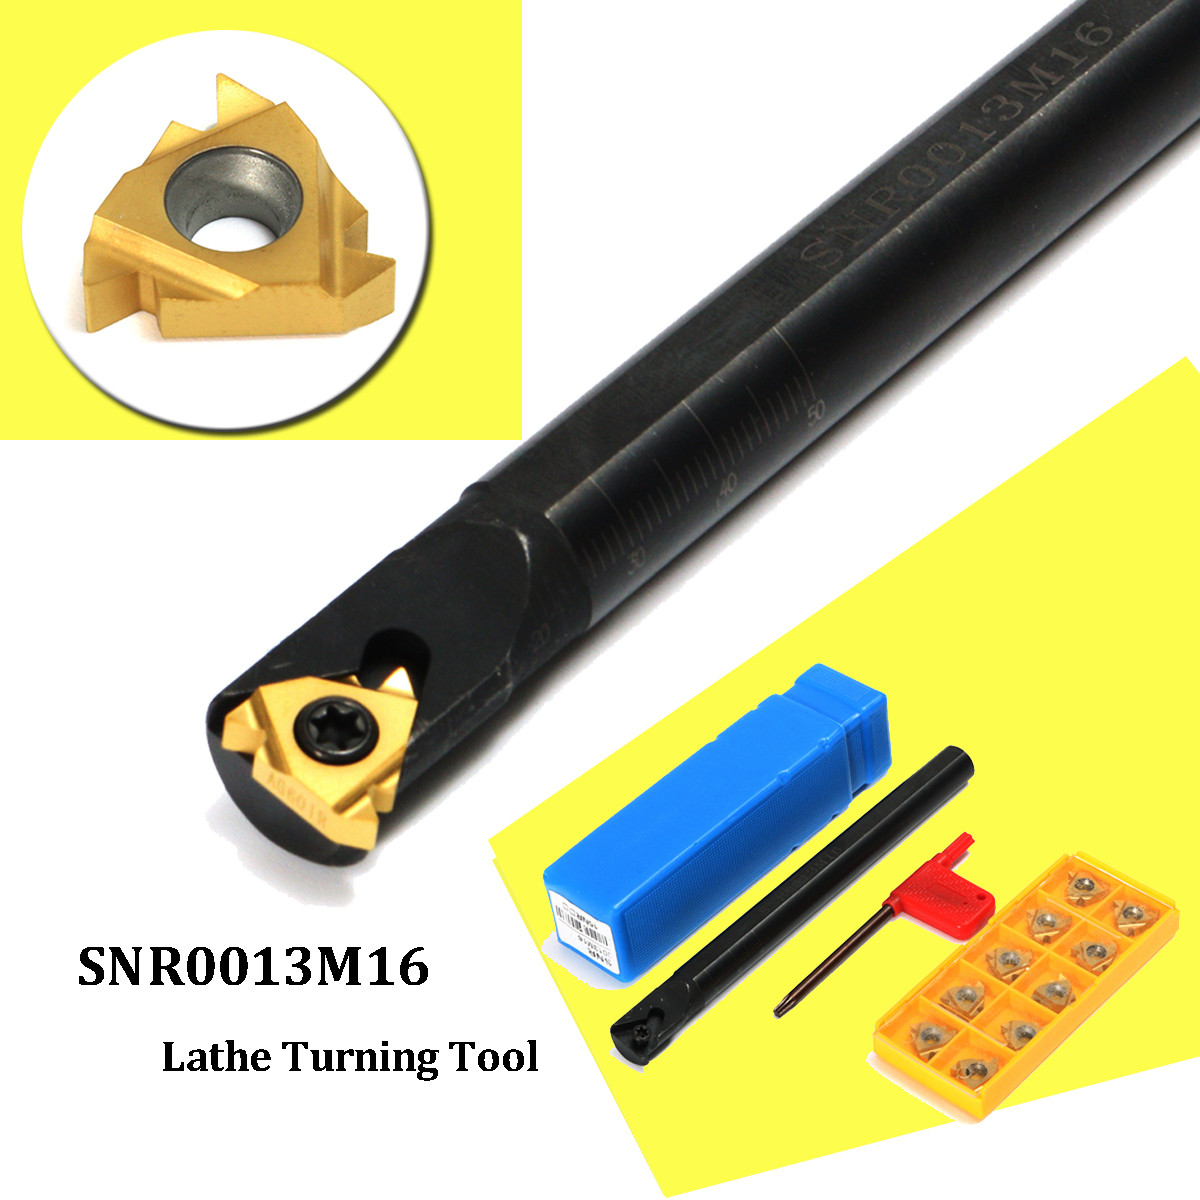 1 Set SNR0013M16 CNC Tool Holder Boring Bar + 10pcs 16IR AG60 Insert with Wrench For Lathe Threading Turning Tool(China)